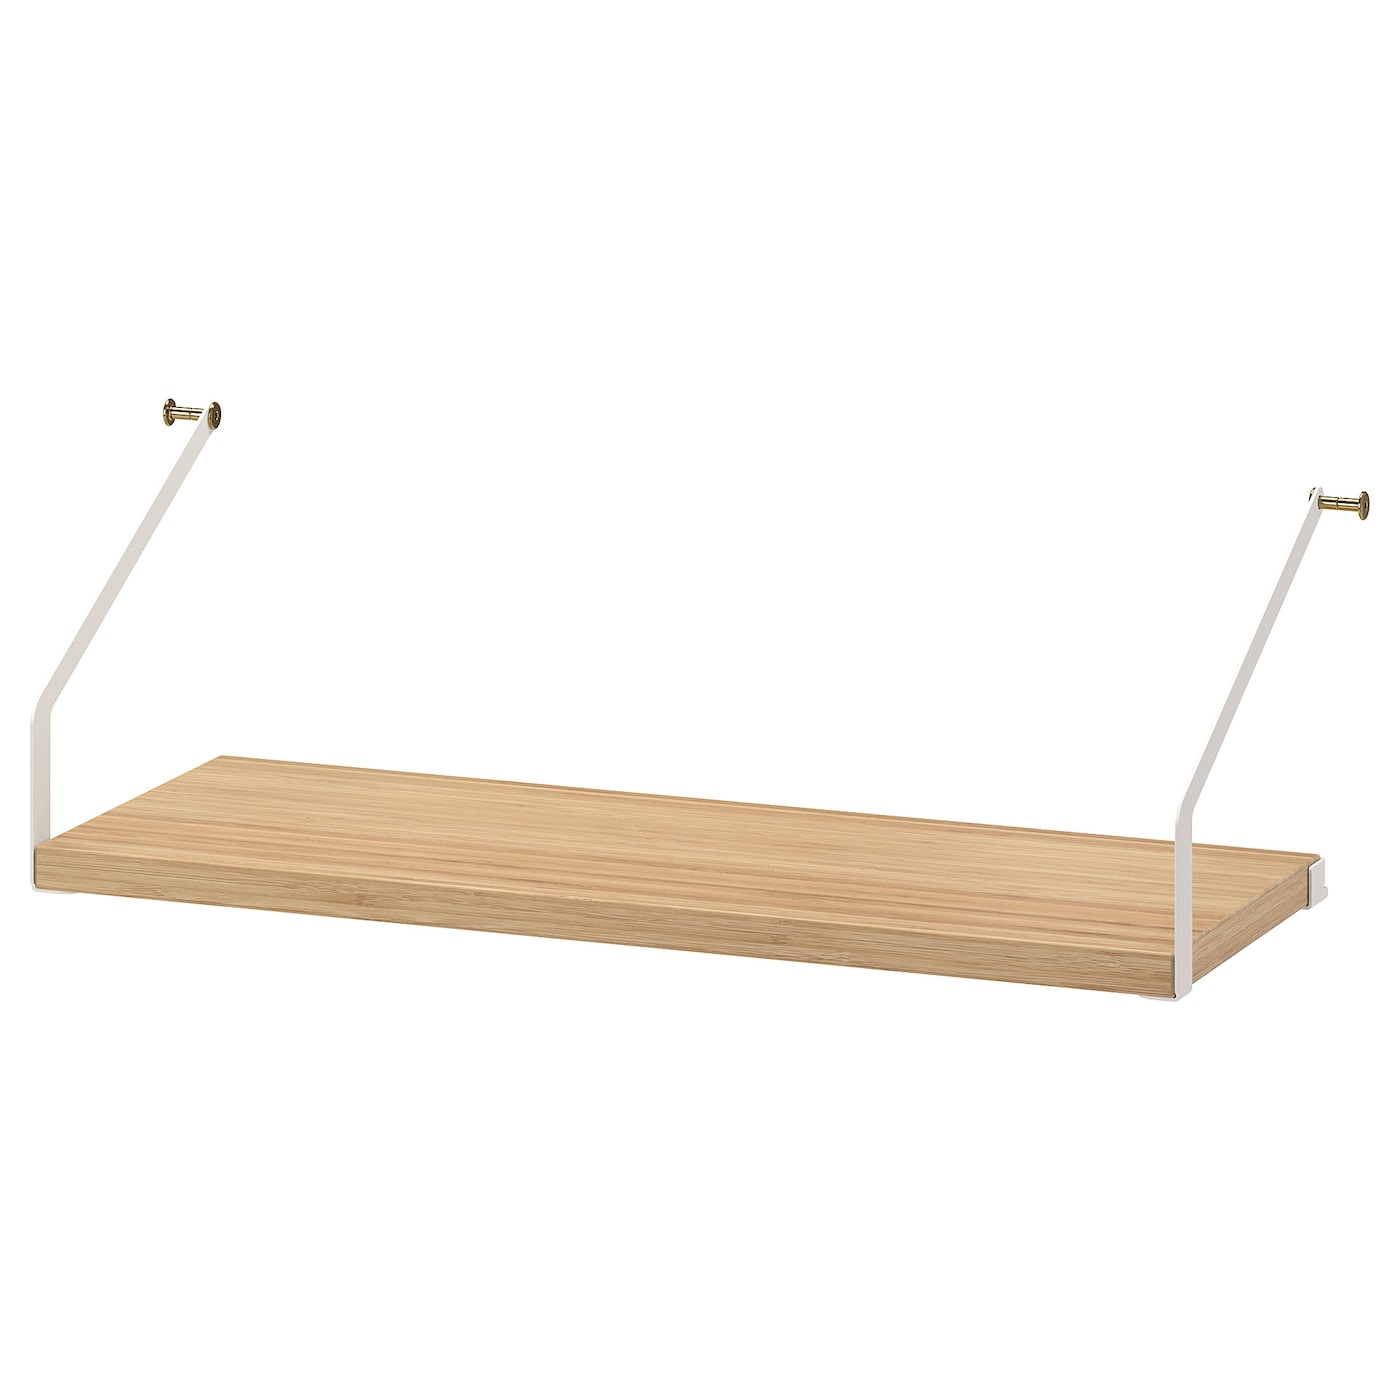 IKEA SVALNÄS shelf Made of bamboo, which is an easy-care, hard-wearing natural material.